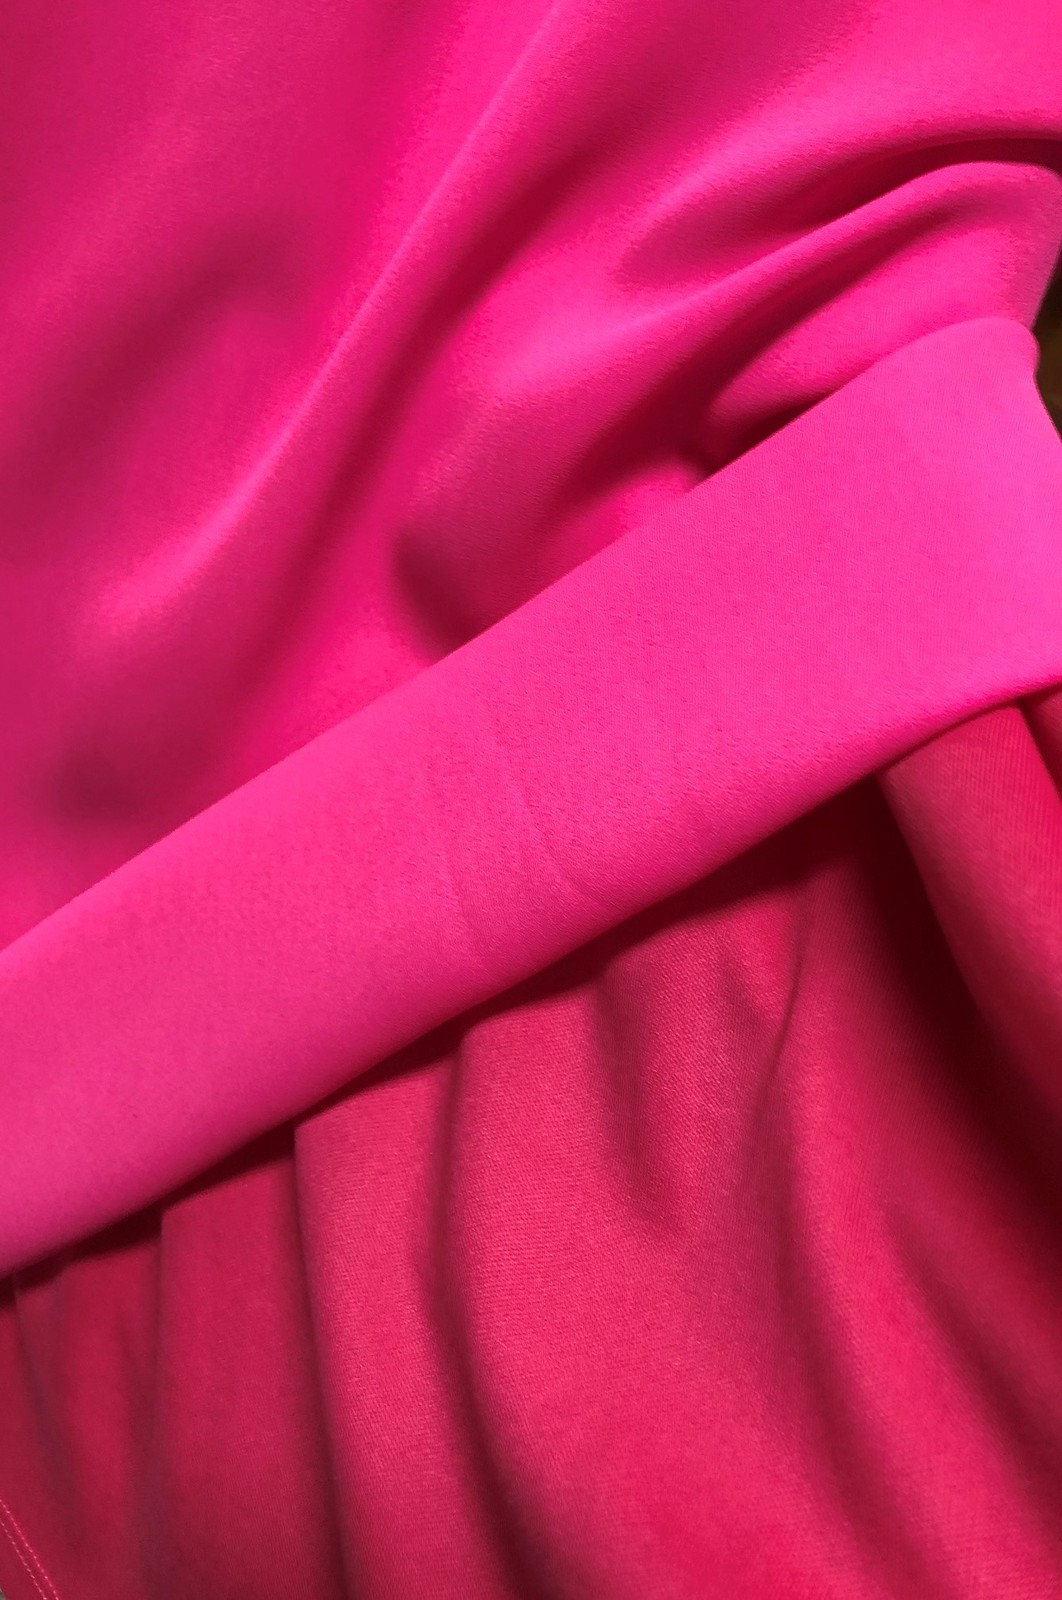 The Impeccable Pig Hot Pink Choker Dress Sleeveless Lined Sz L image 7